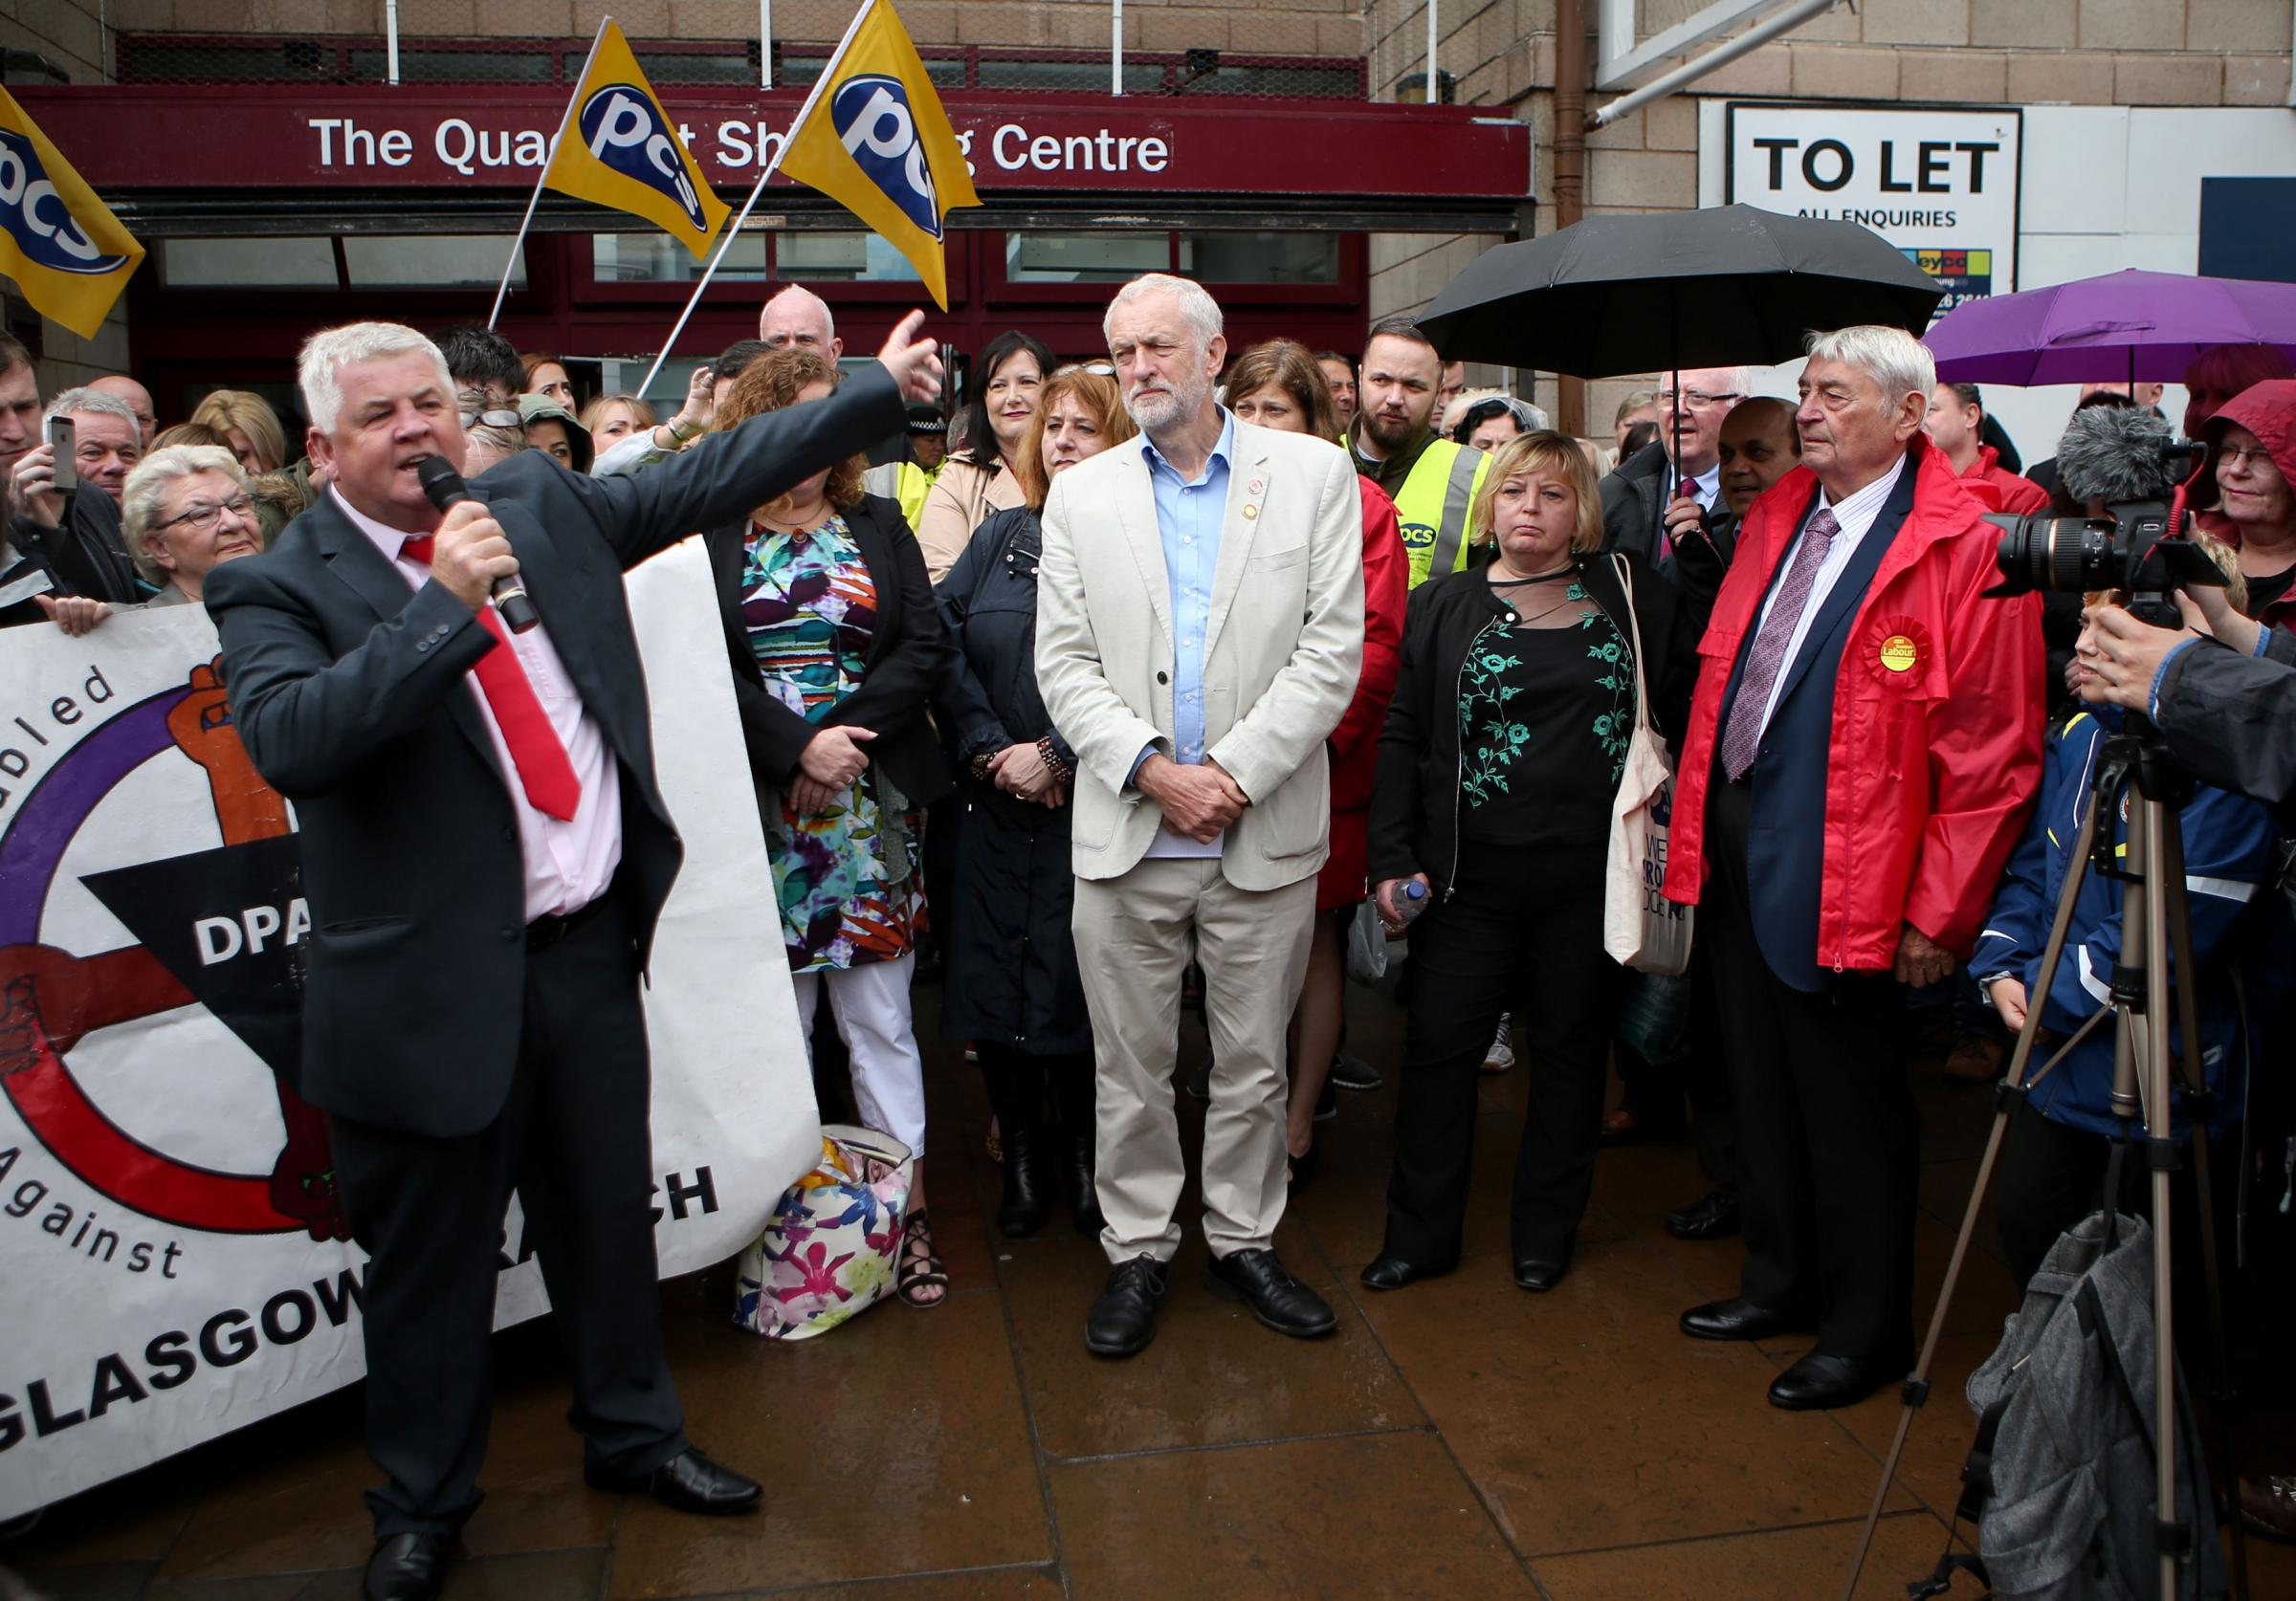 Hugh Gaffney MP, left, with Labour leader Jeremy Corbyn at a rally in Coatbridge.